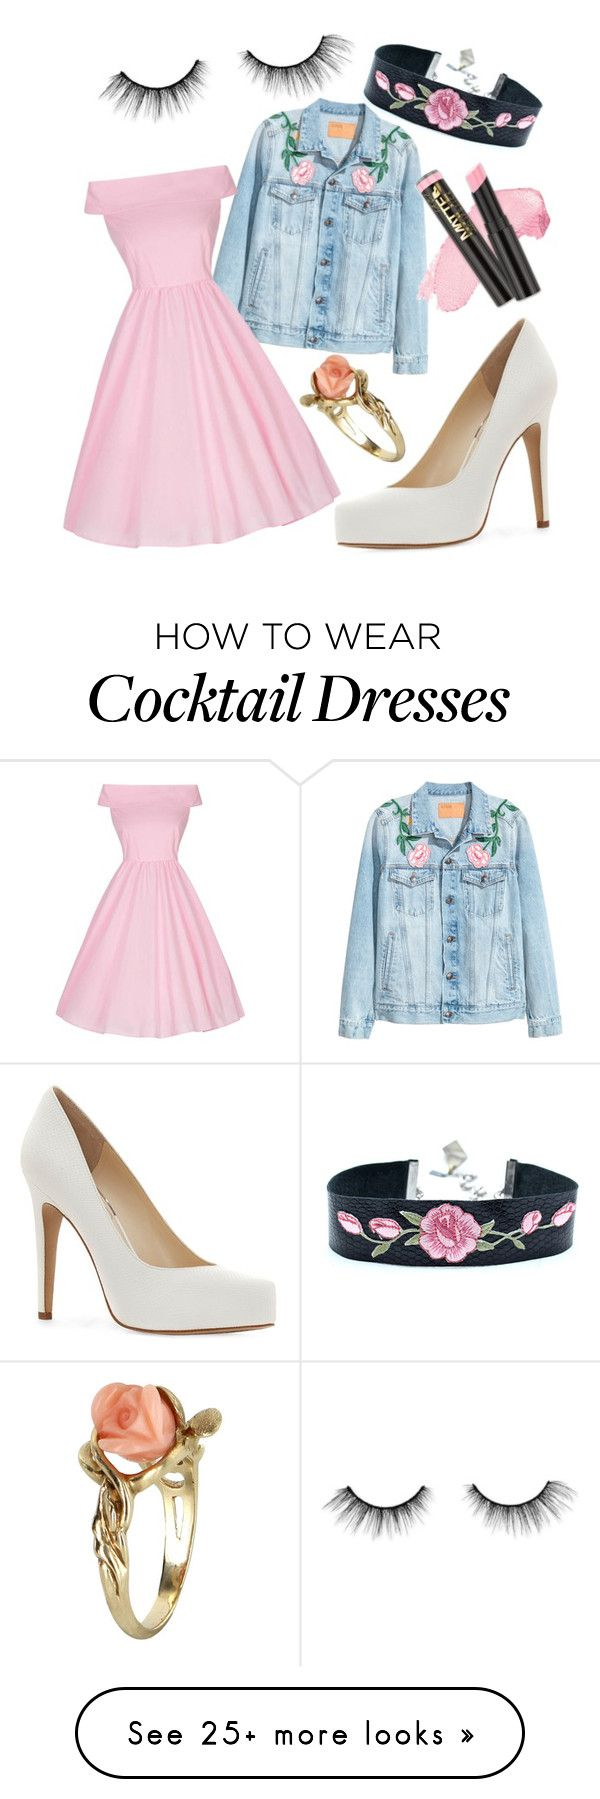 """Cheap Roses"" by aradealer on Polyvore featuring Jessica Simpson, Vintage, tarte and L.A. Girl"